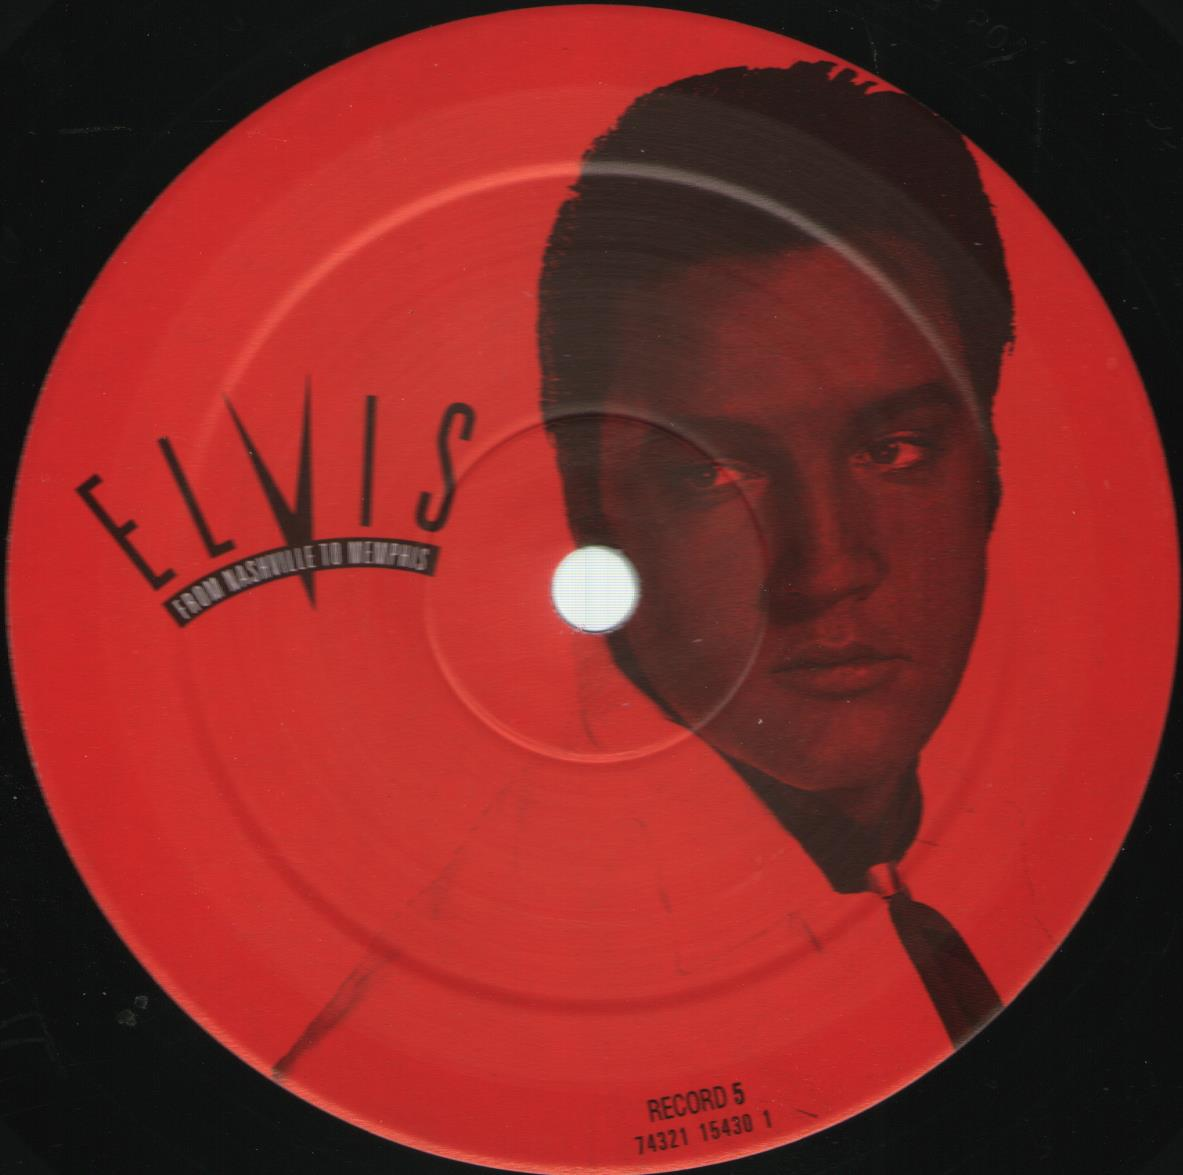 ELVIS - FROM NASHVILLE TO MEMPHIS - THE ESSENTIAL 60'S MASTERS Bild1096zzp